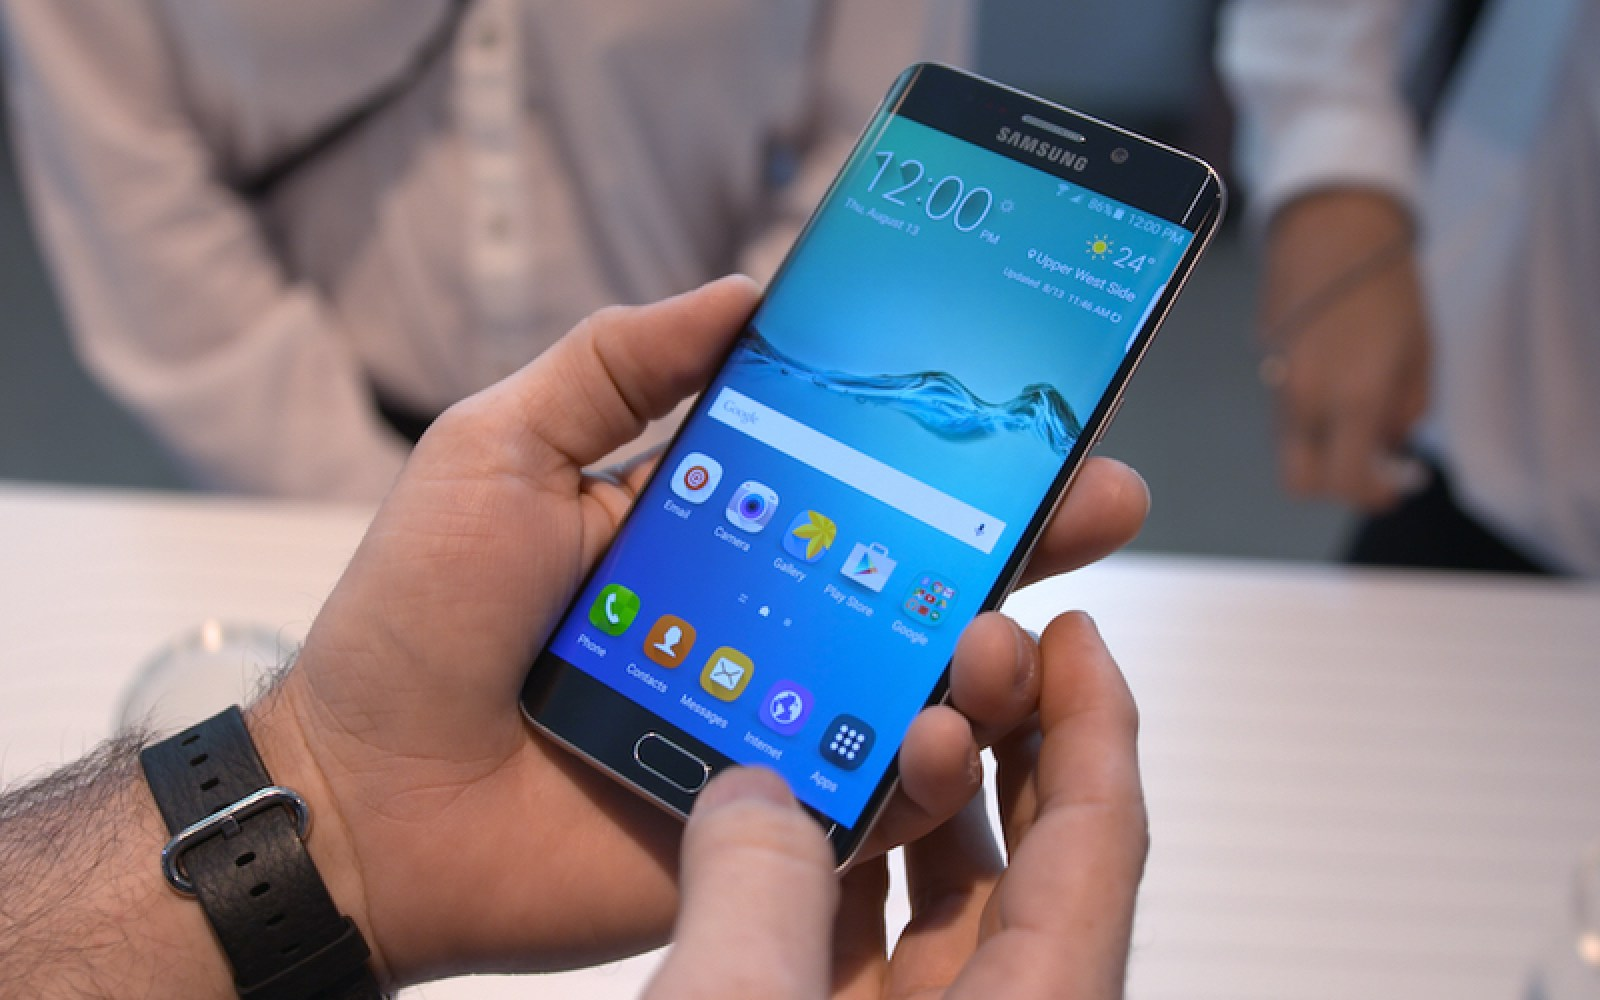 Samsung's latest Android Lollipop software 'About Phone' screen now shows most recent security patch info